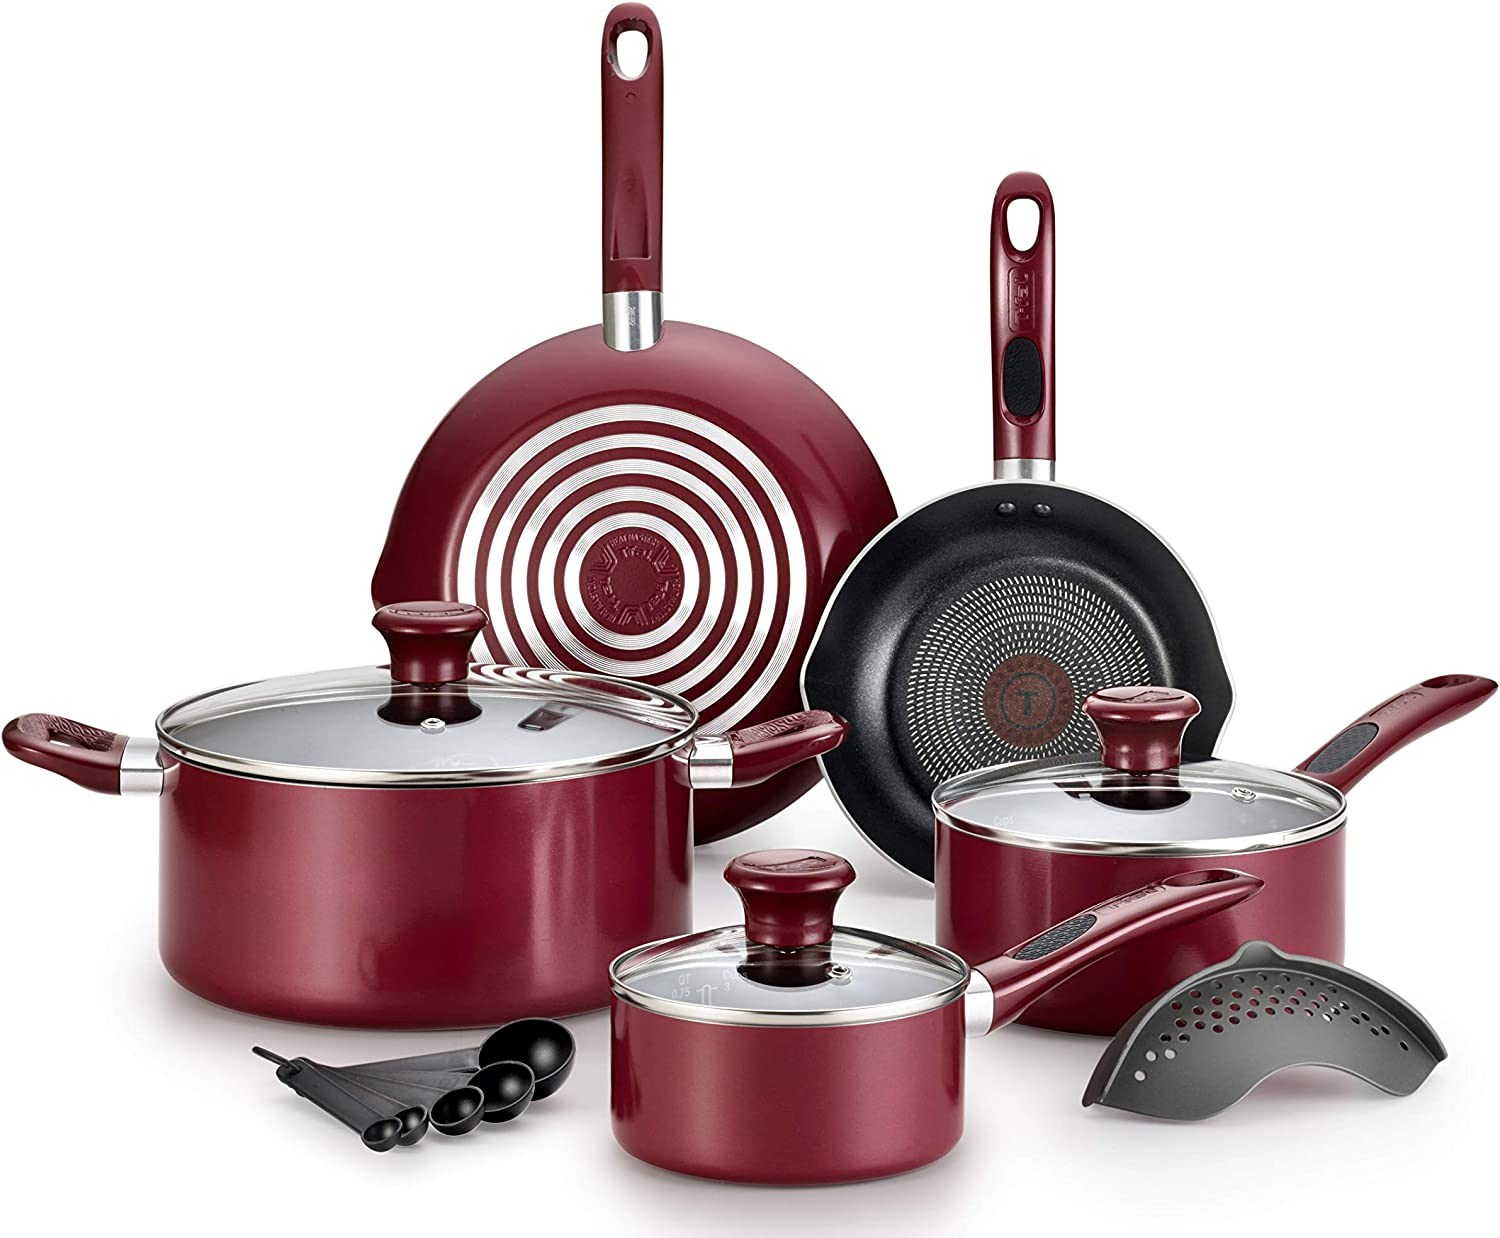 T-fal B039SE64 Excite ProGlide Nonstick Thermo-Spot Heat Indicator Dishwasher Oven Safe Cookware Set, 14-Piece, Red